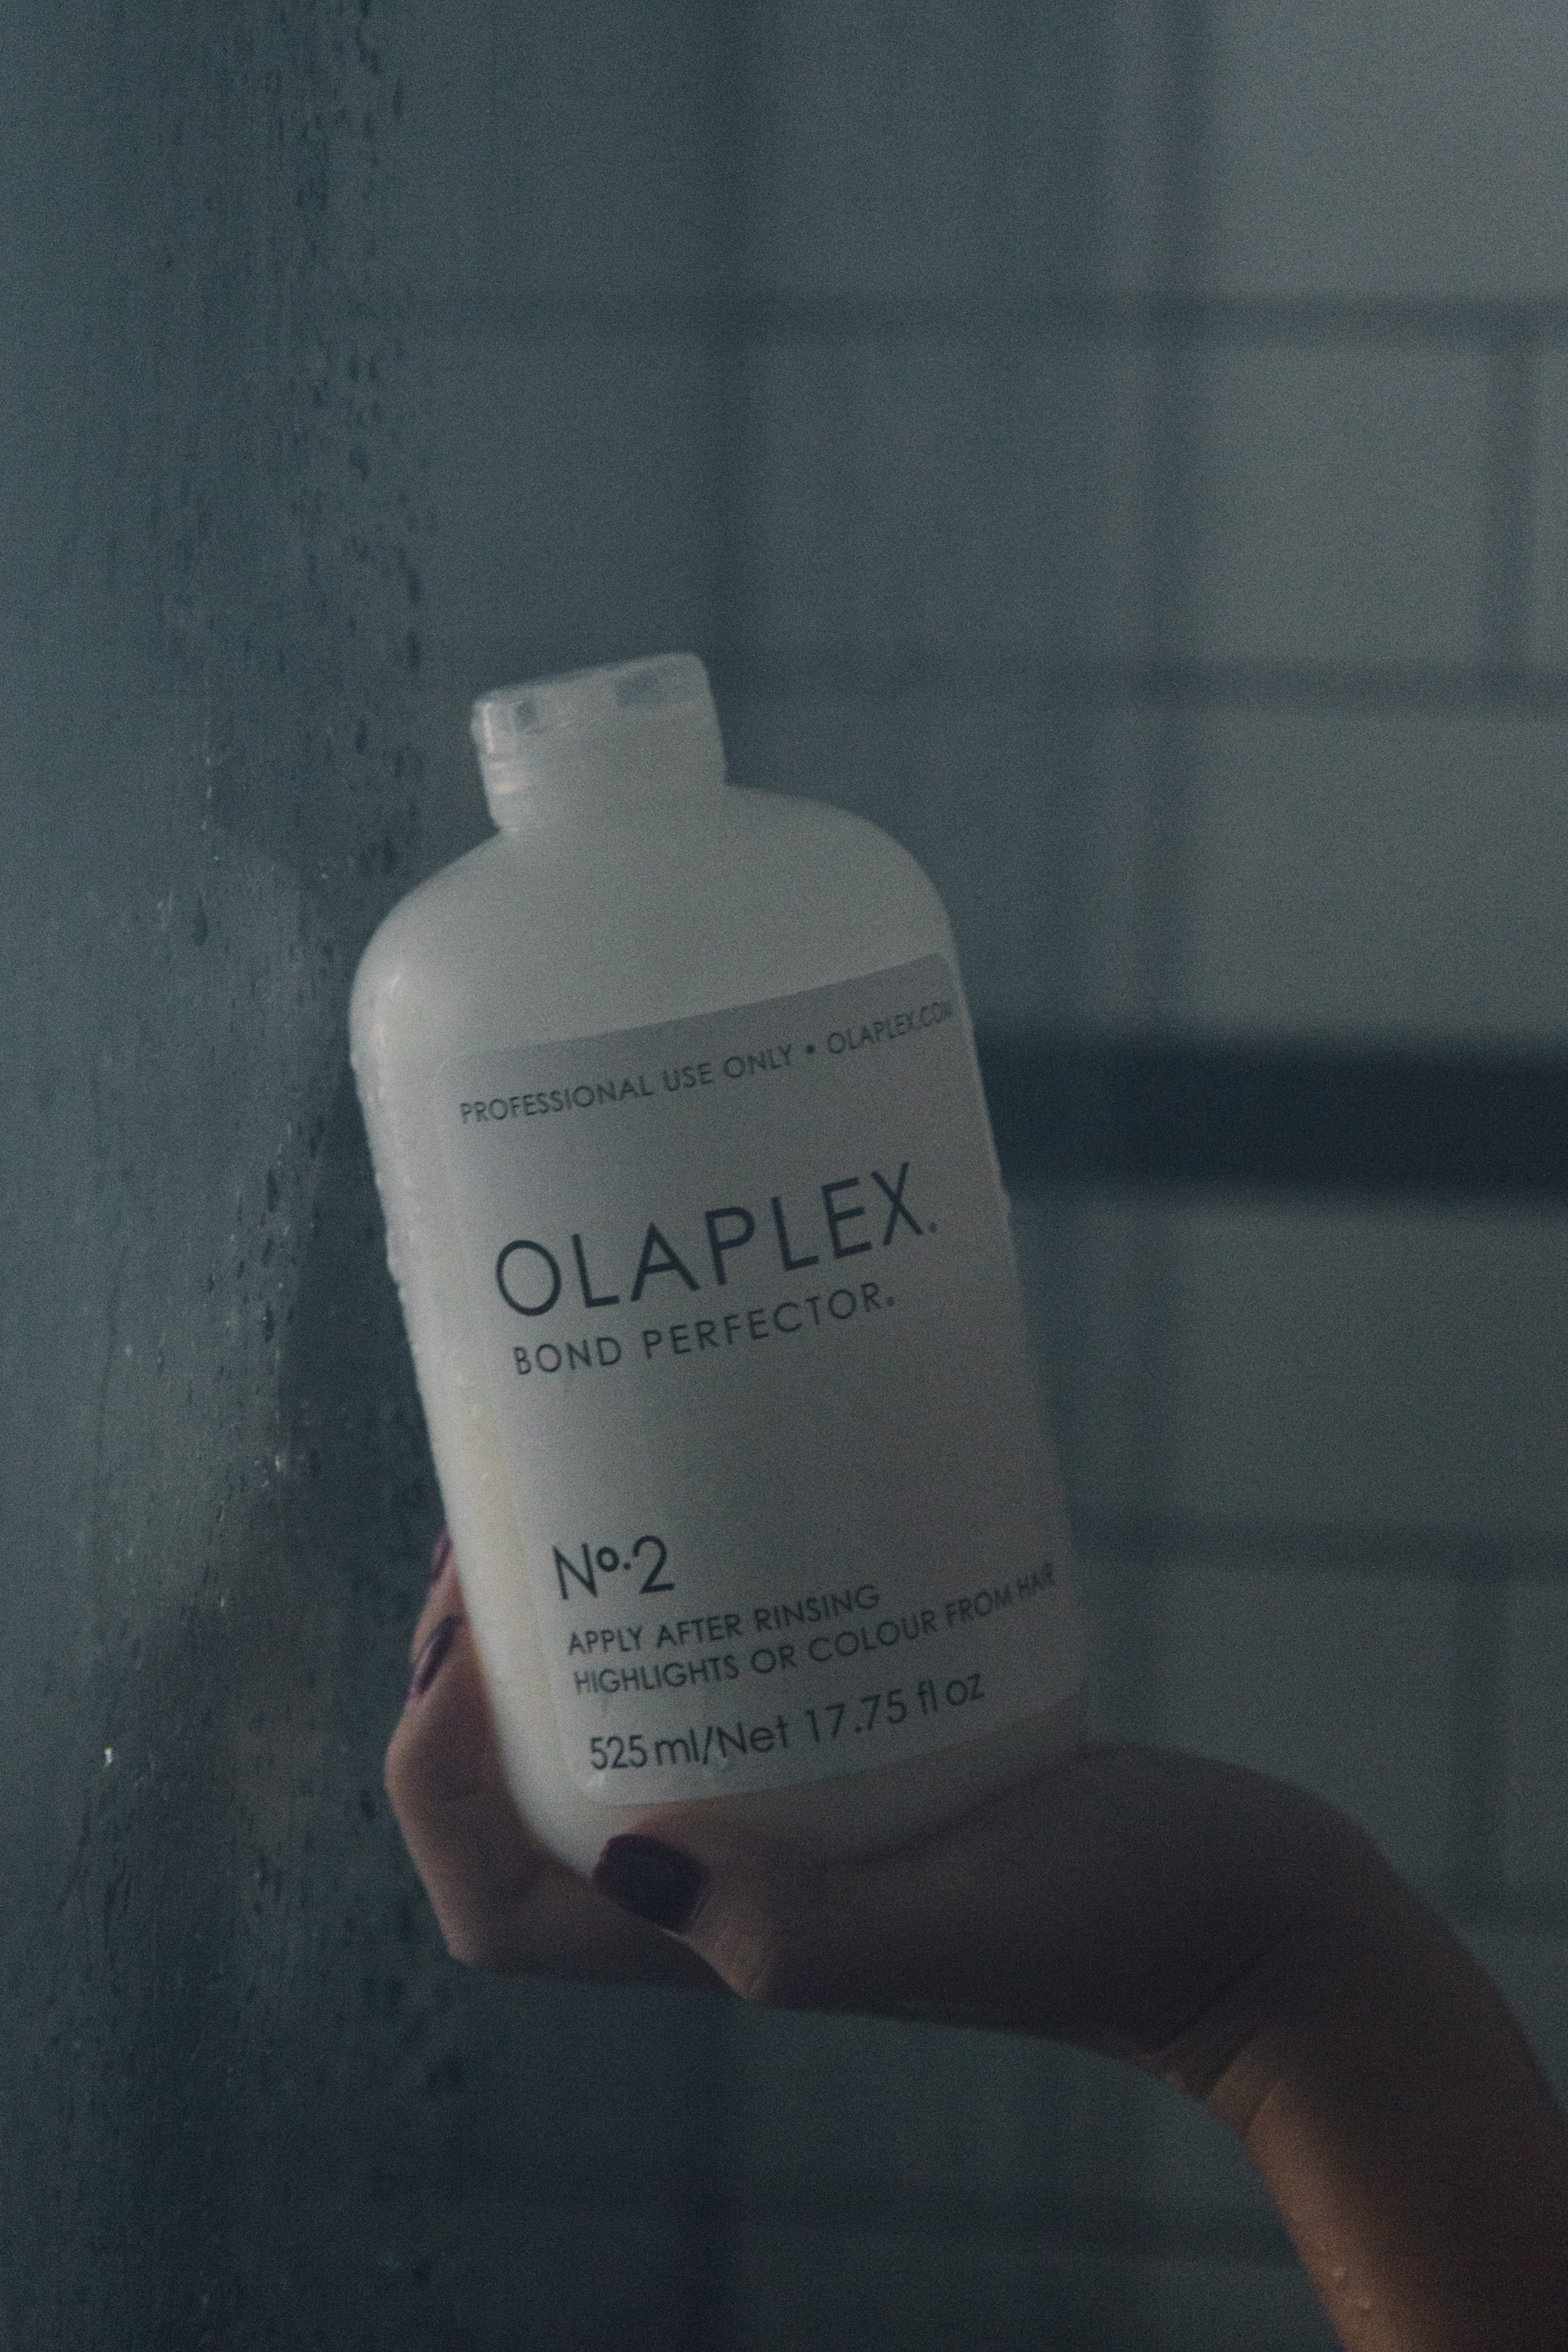 1. Deep Condition/Hair Mask - This is literally my saving grace and holy grail product. If it wasn't for Olaplex, my hair would be crisps now. This is really the one product that helps strengthen and heal my super bleached out hair--I would highly recommend it. I go through a giant bottle every two months. (You can't buy this 17.75fl oz retail-- I bought it off my hairstylist, but you can buy the smaller version on Amazon.)I'm not really the type to stand around for things (probably because my attention span sucks) so I like to do this FIRST, and let it sit in my hair while I do other things, like shave my legs.Shop Olaplex.